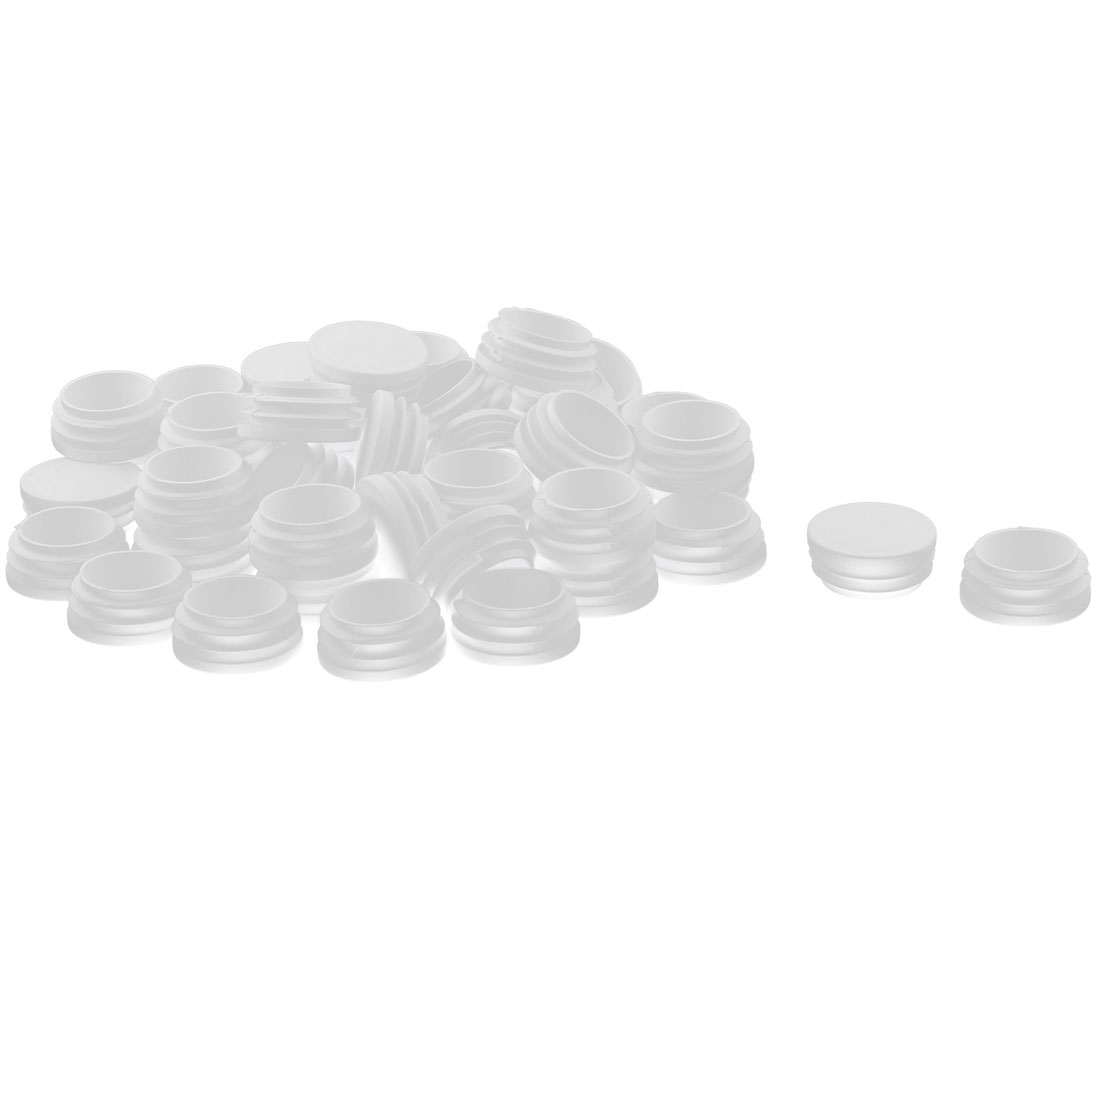 Furniture Desk Chair Leg Feet Plastic Round Head Pipe Tube Insert White 50 Pcs